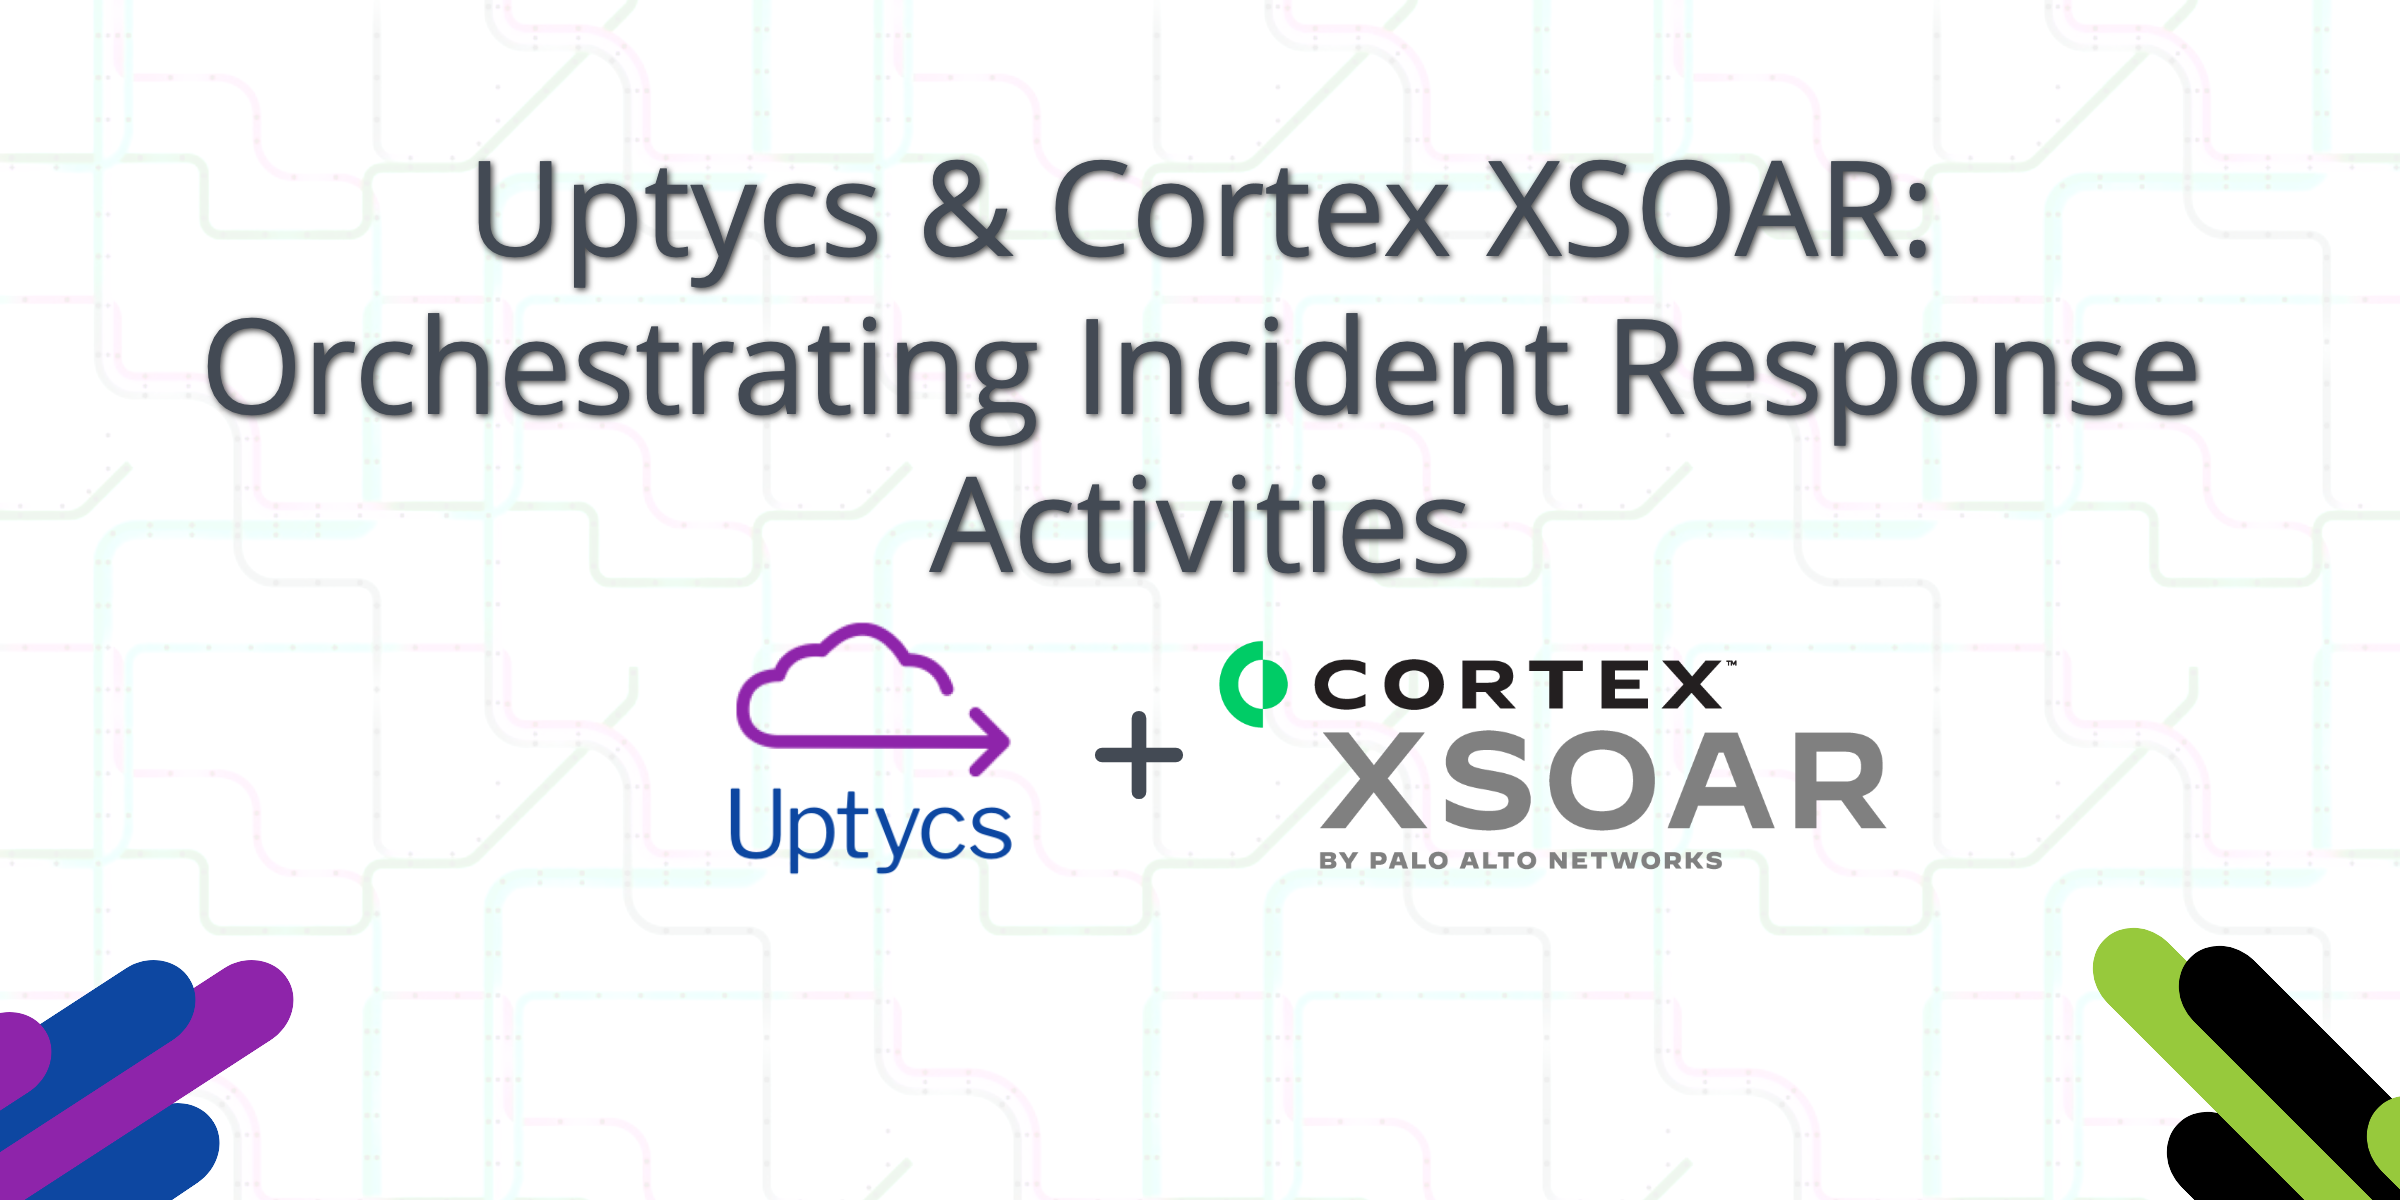 Uptycs & Cortex XSOAR: Orchestrating Incident Response Activities